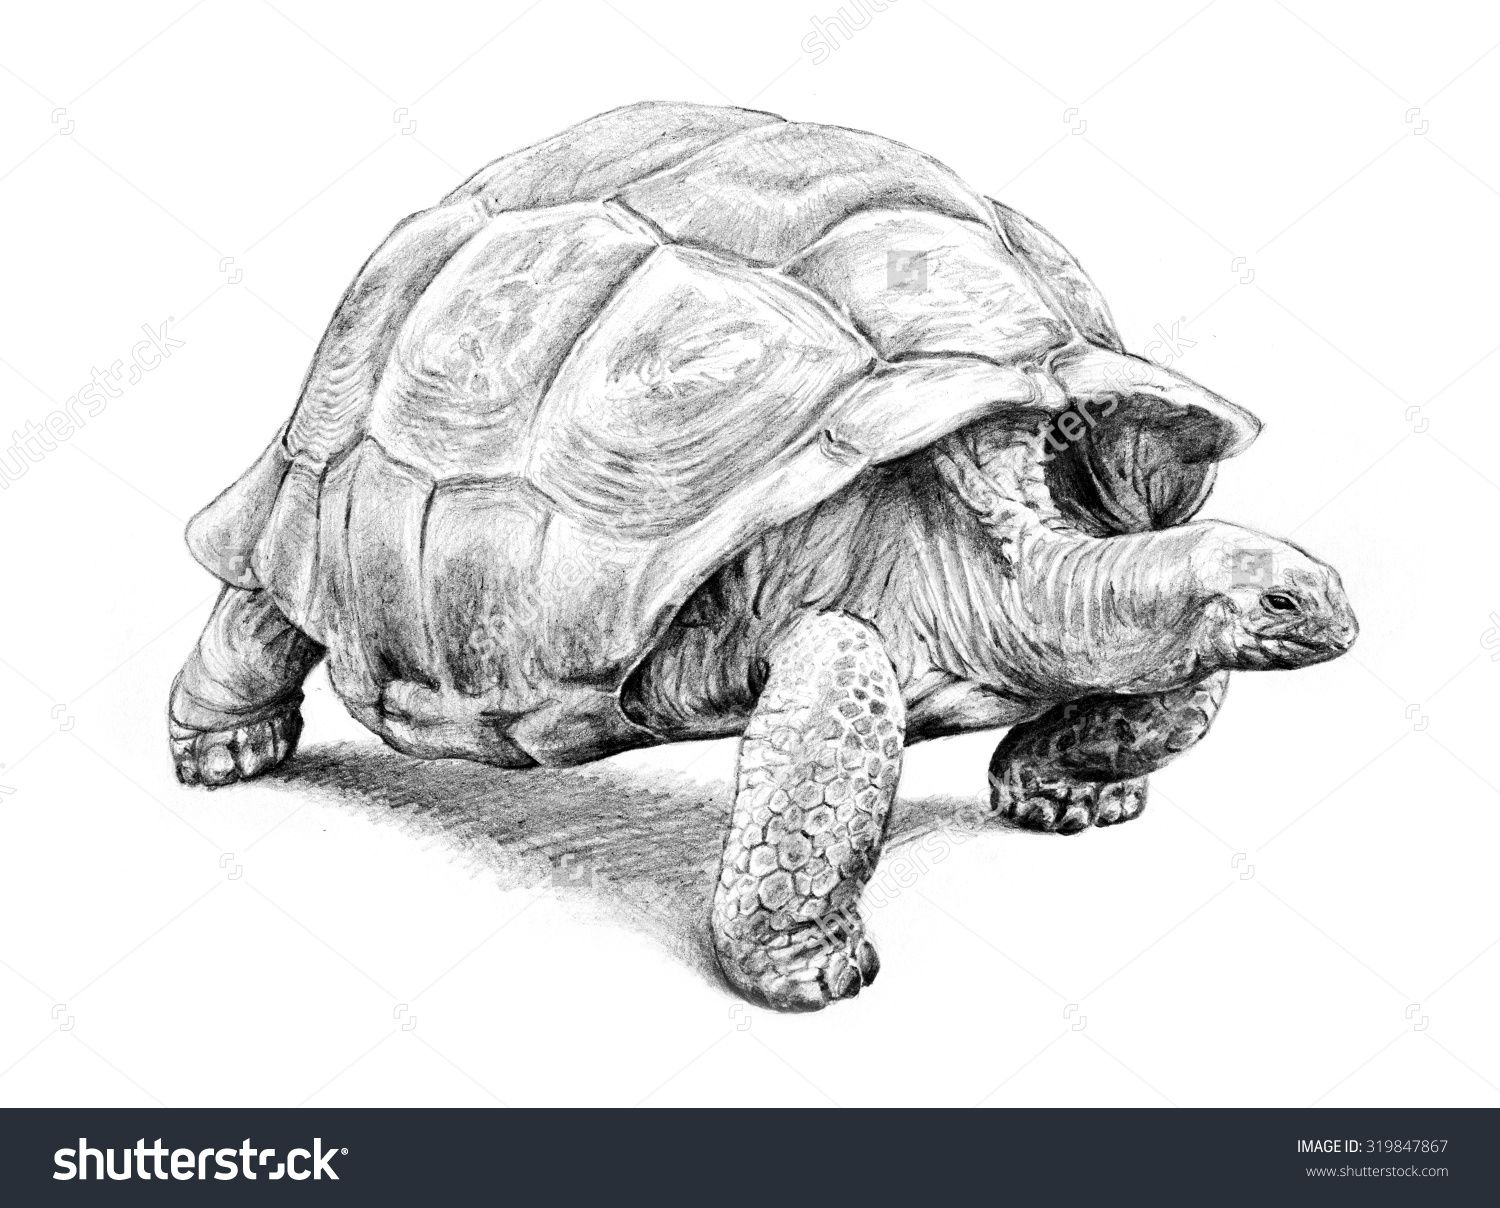 Pin by heather miller on art inspiration in 2019 tortoise drawing